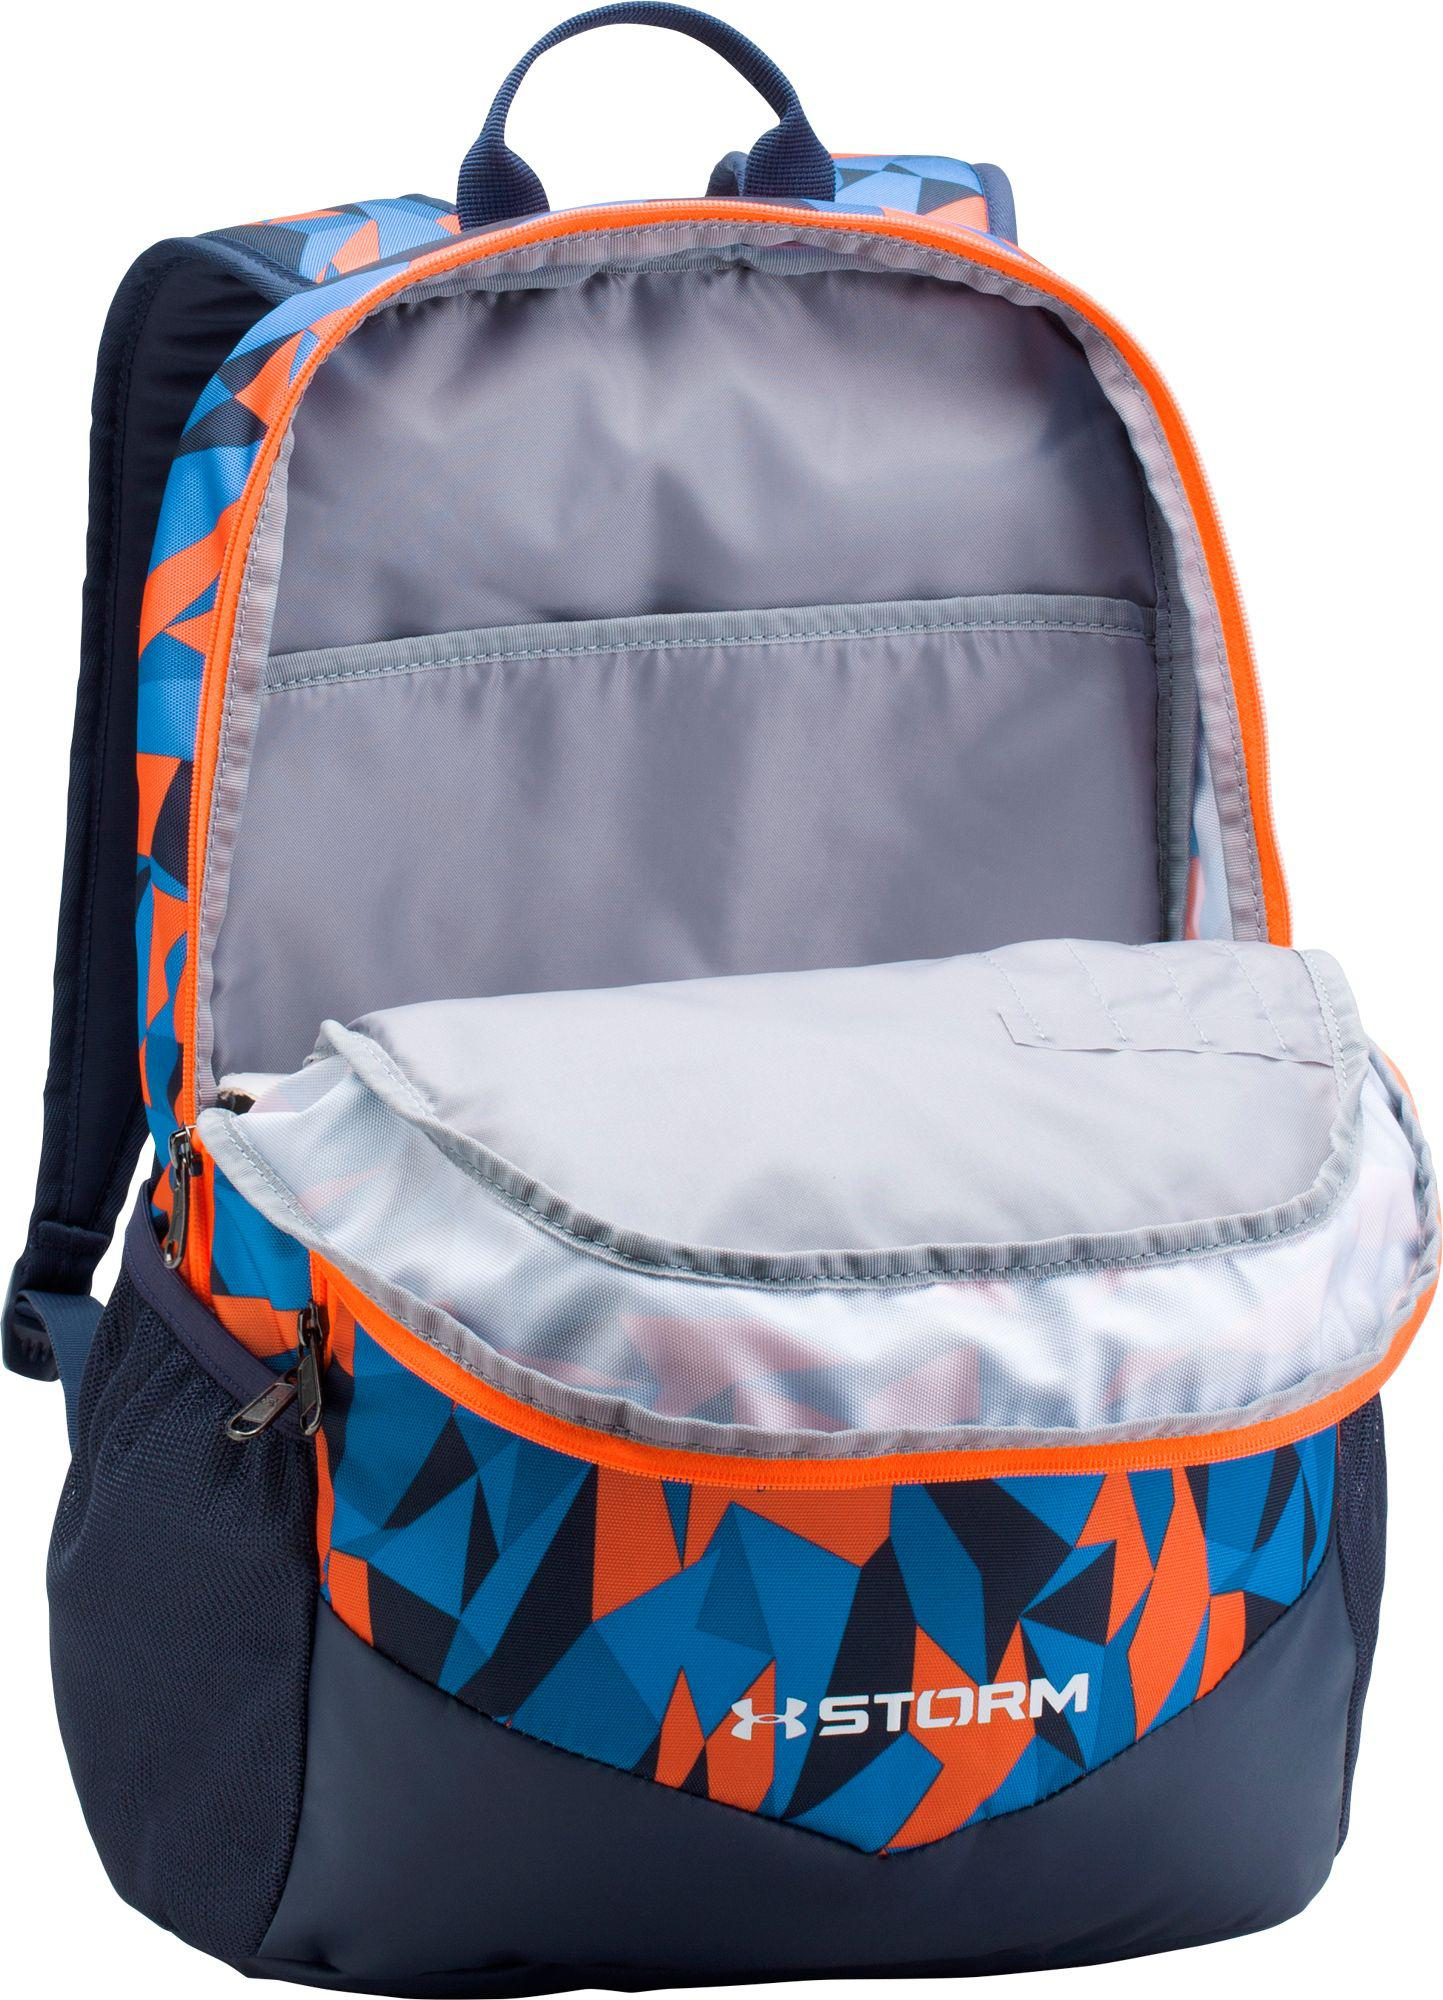 75ad422153 Lyst - Under Armour Youth Scrimmage Backpack in Blue